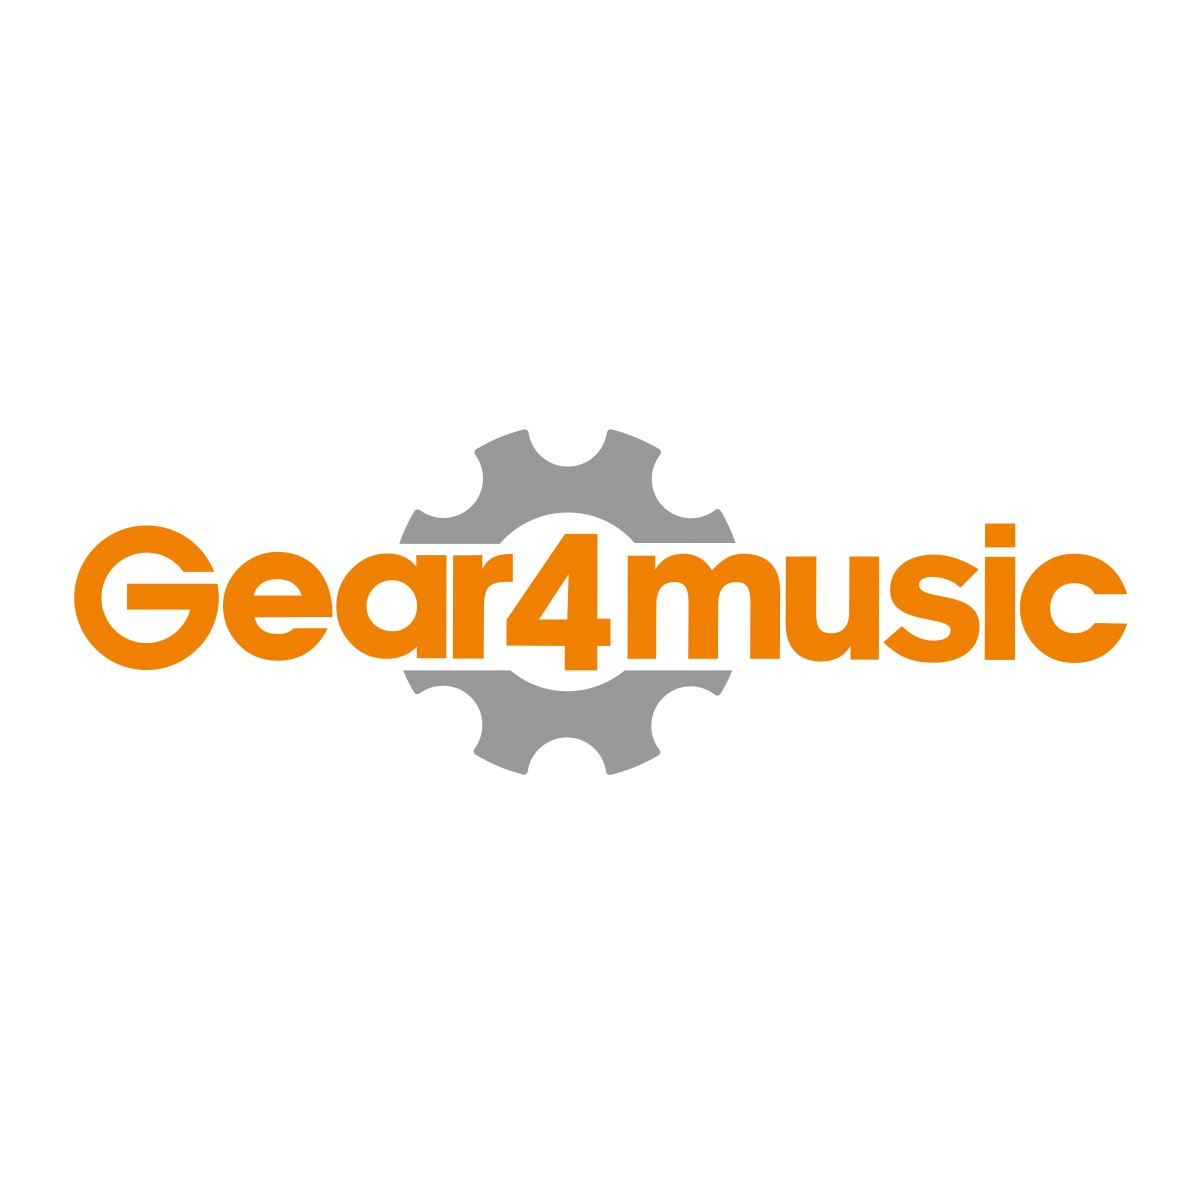 Stand Traditionnel pour Guitare par Gear4music